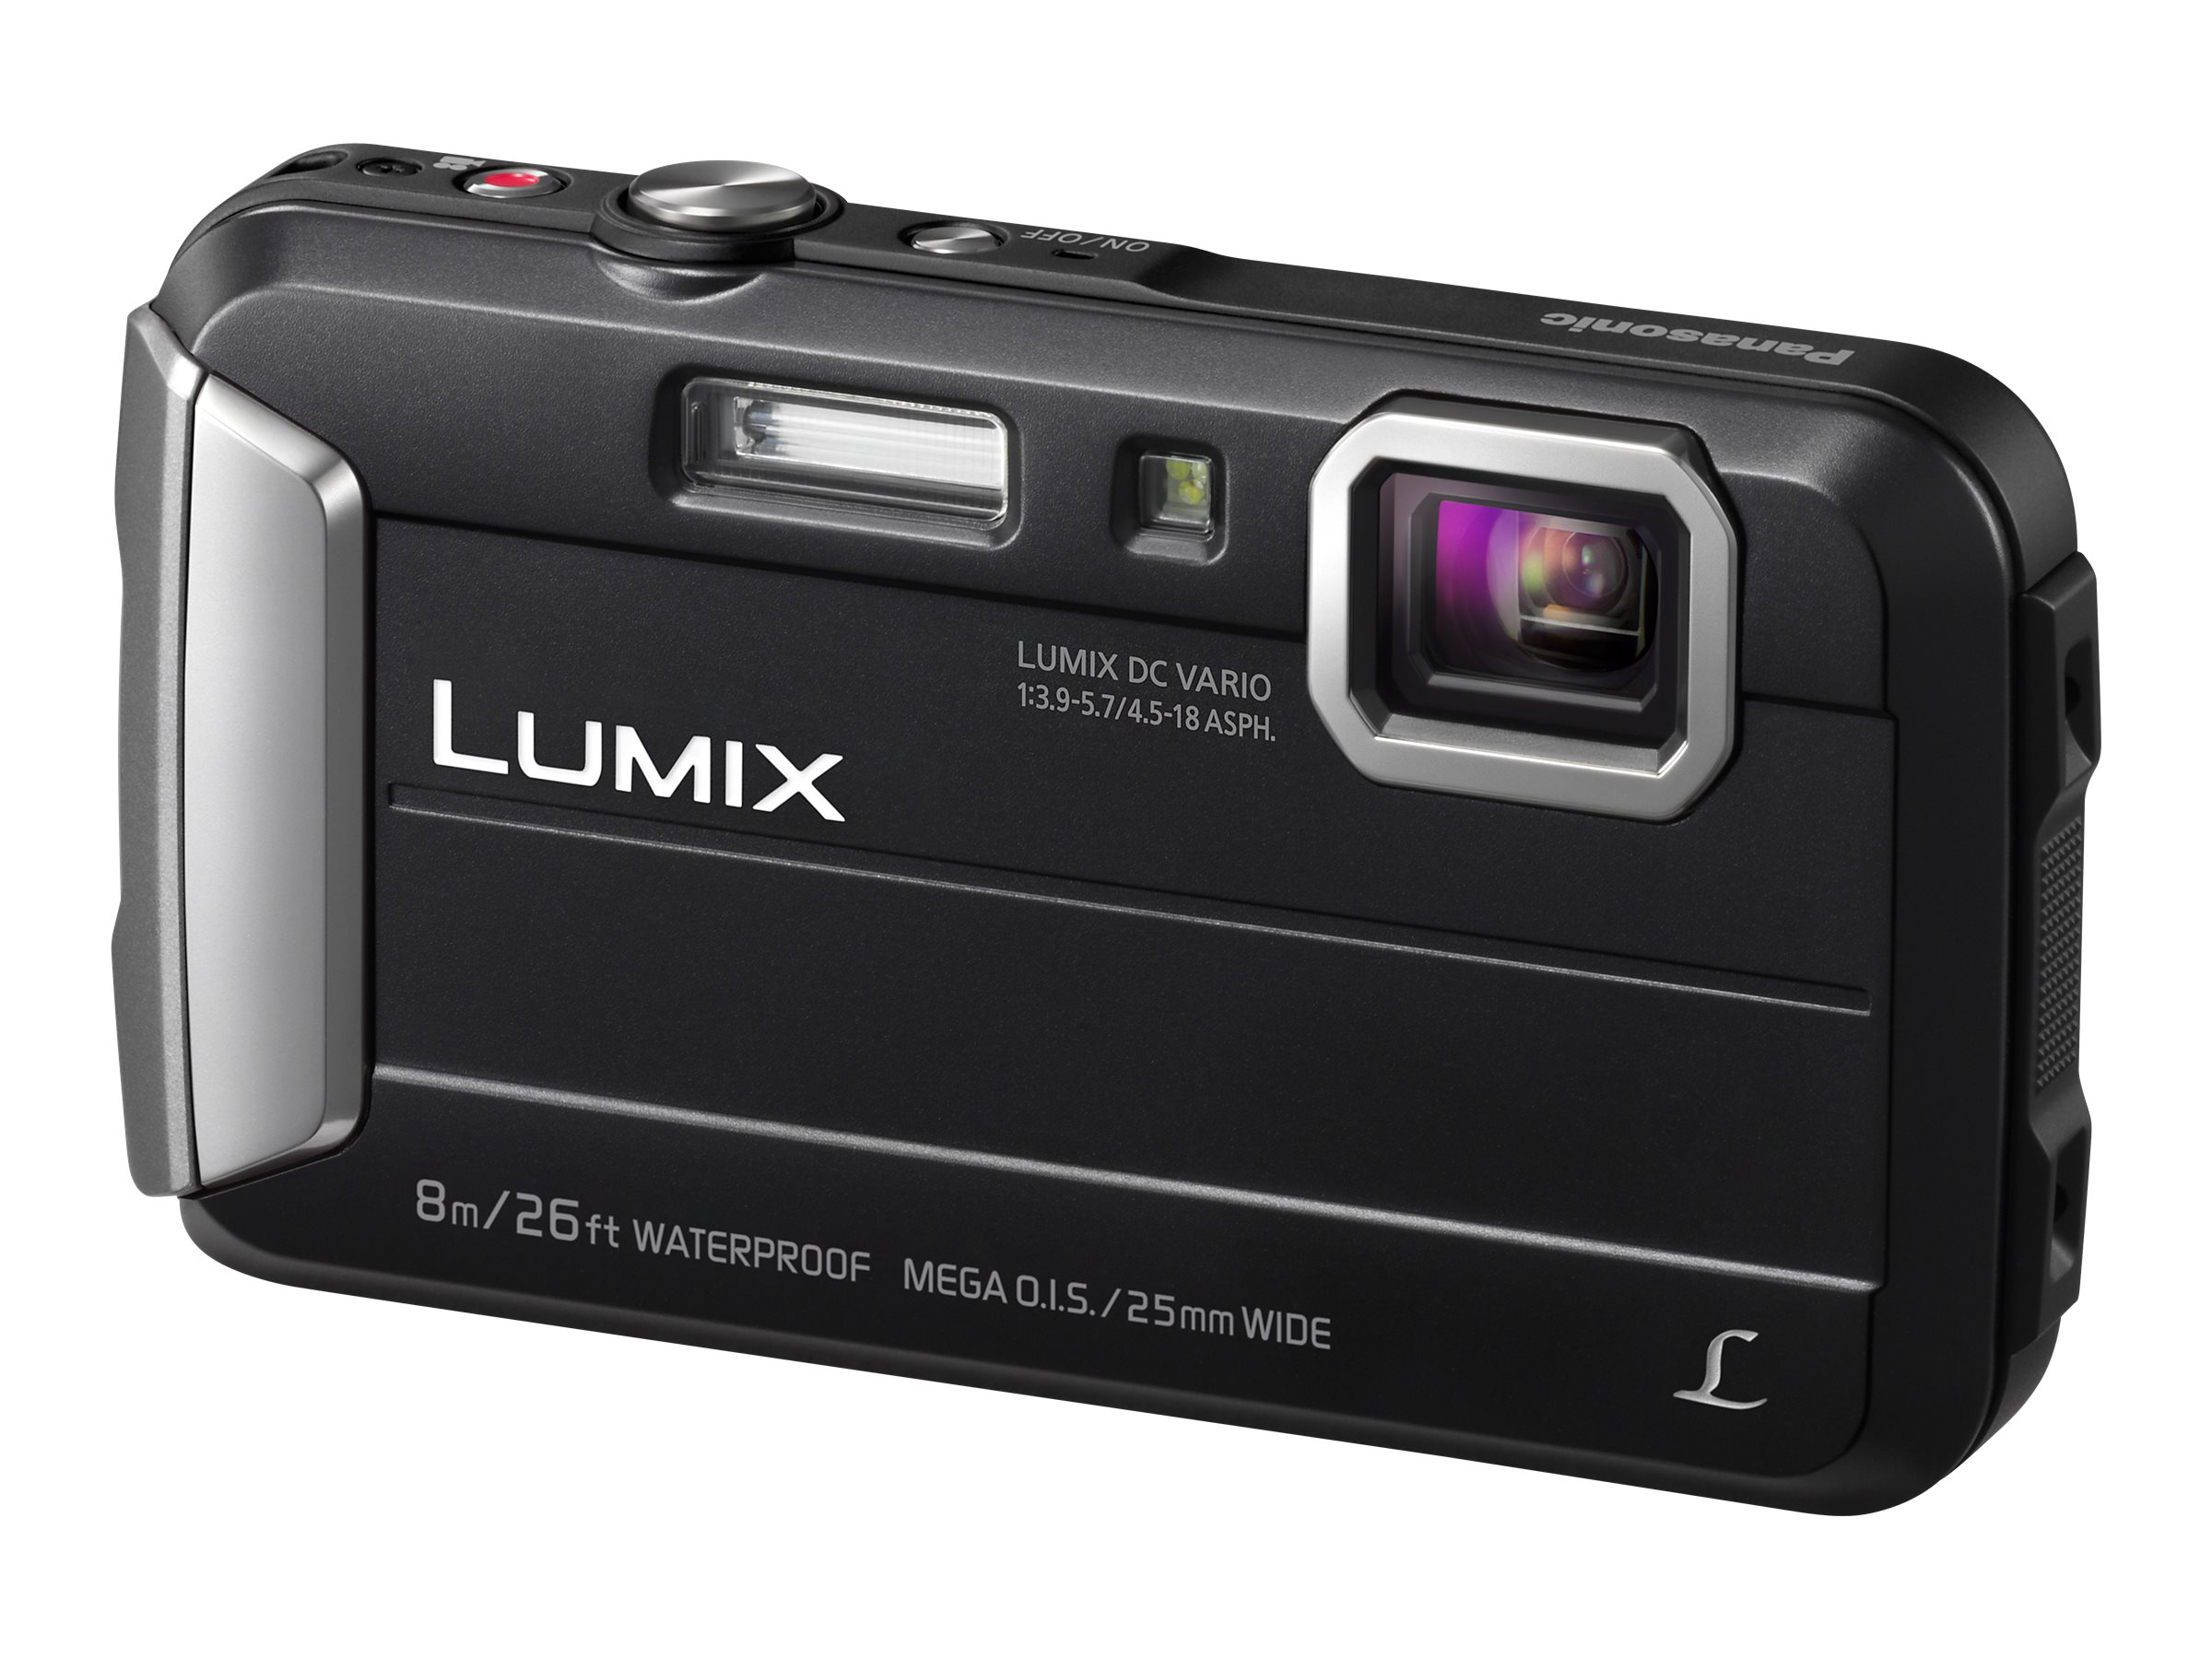 Panasonic 16.1MP Active Lifestyle Tough Waterproof Camera, Black, DMC-TS30K, 20459636, Cameras - Digital - Point & Shoot